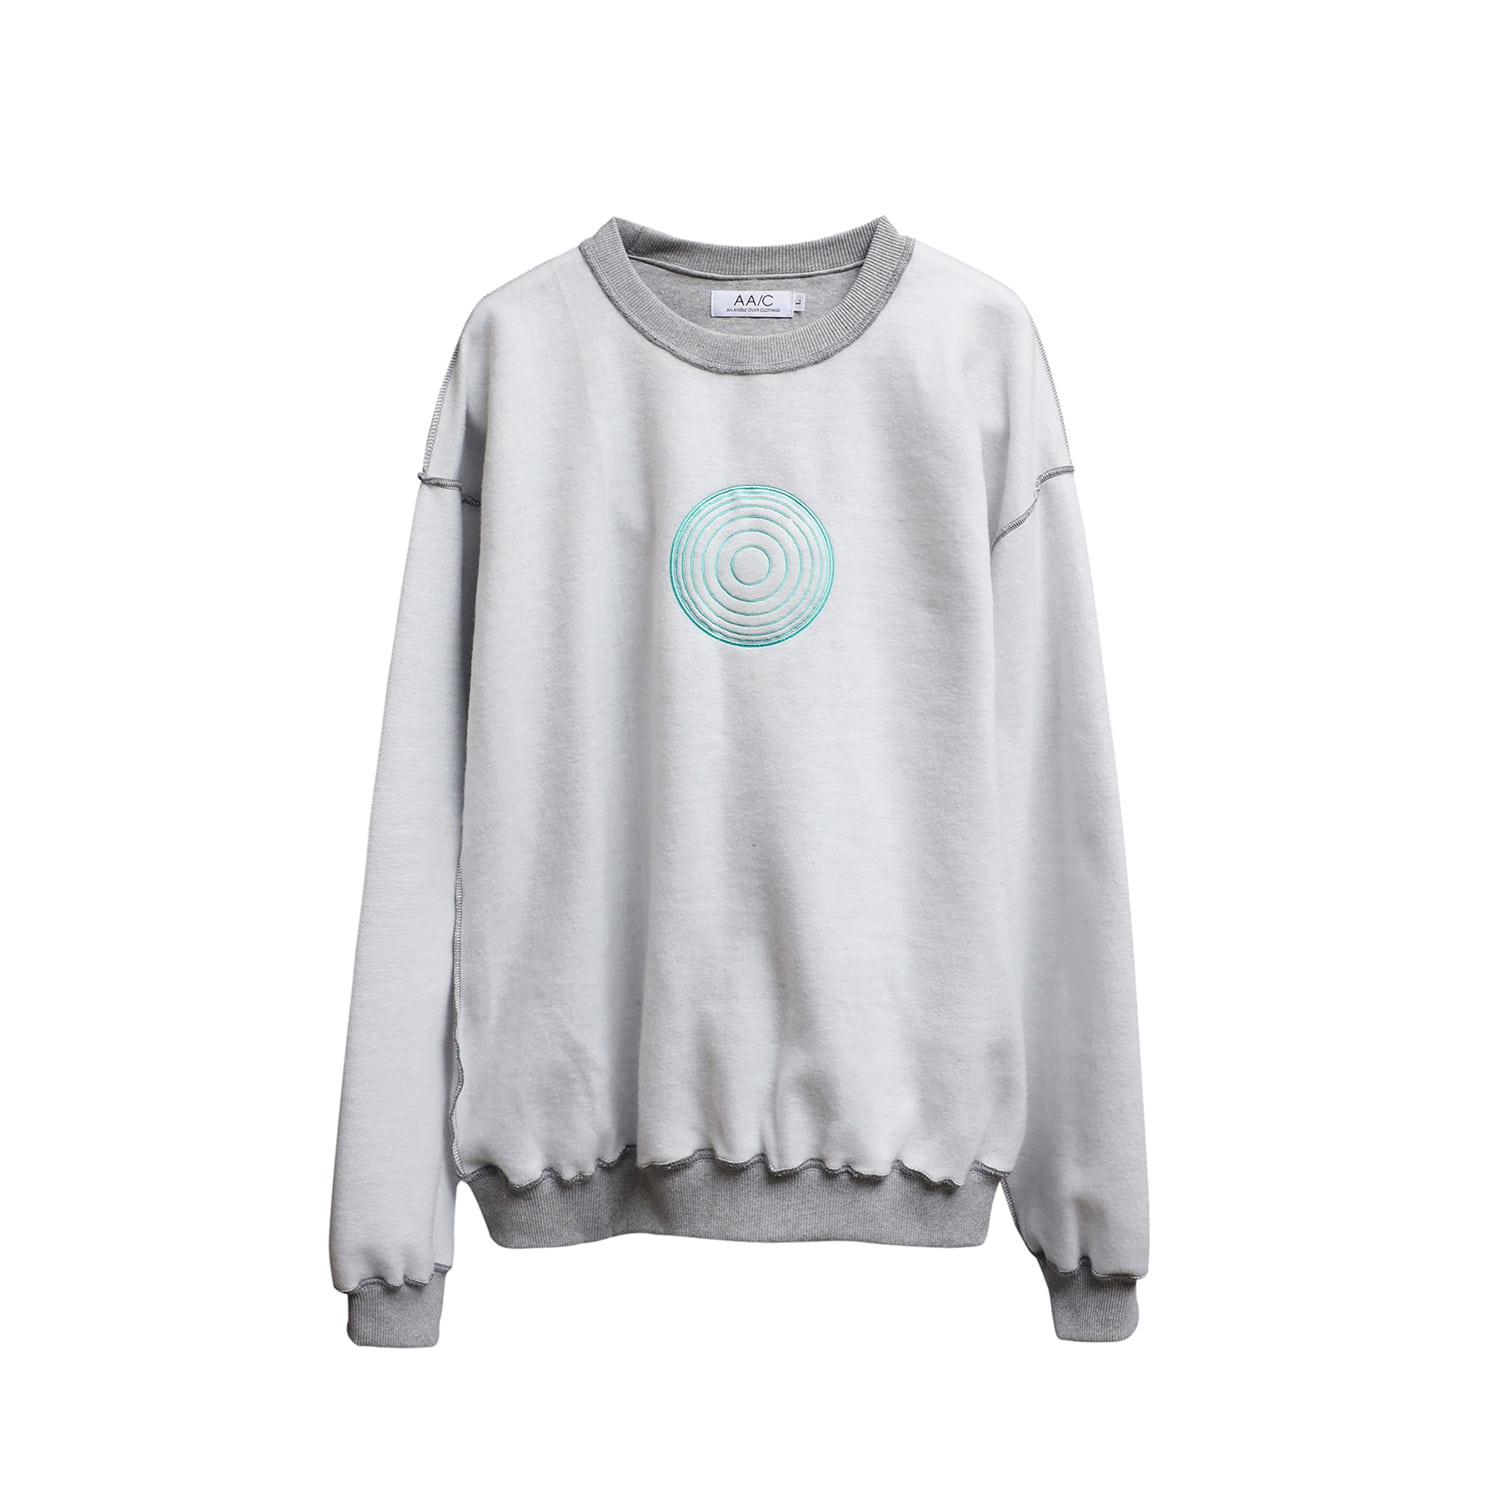 S.S.C Reversible Sweatshirt (gray)